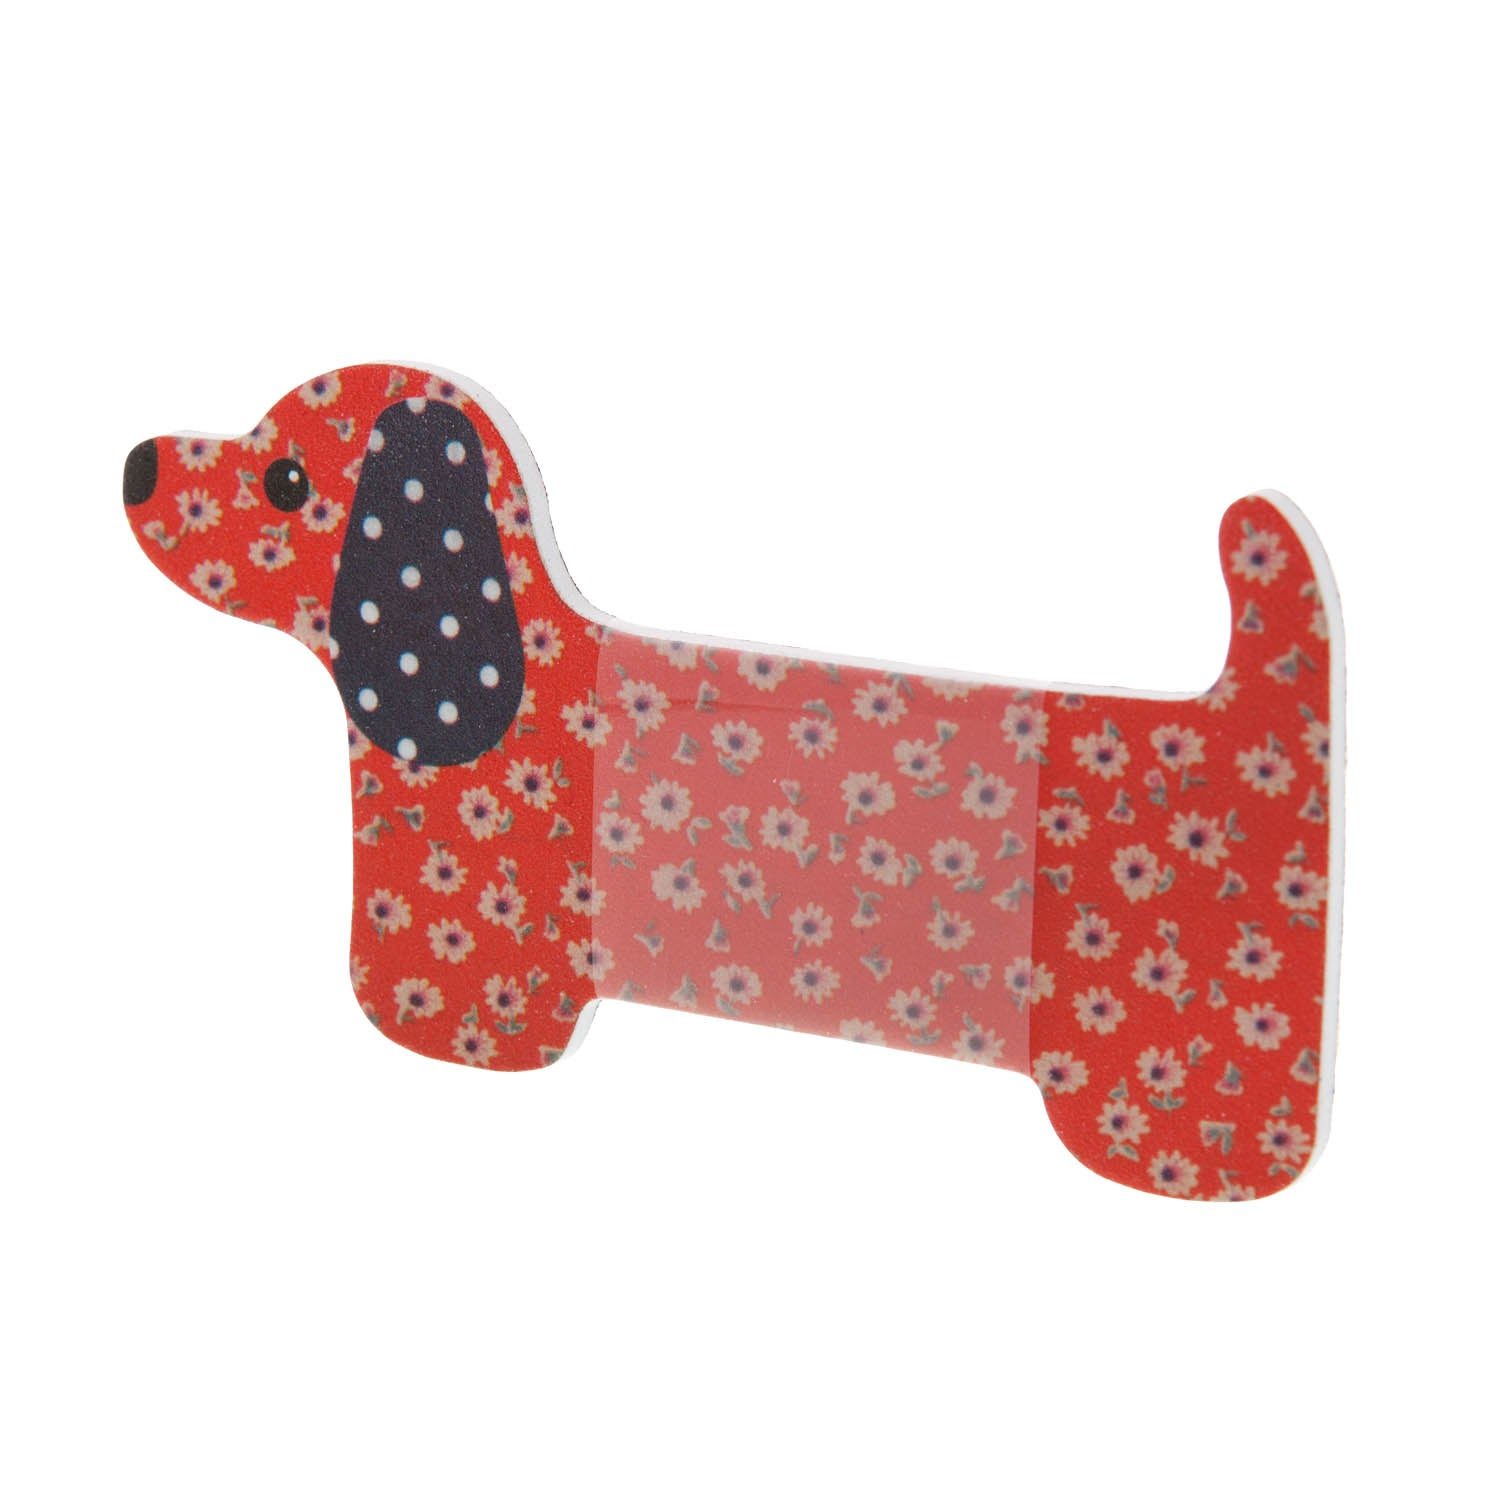 Dog Krazy Gifts - Dachshund Nail File - Orange Daisy, part of the range of Dachshund themed gifts available from DogKrazyGifts.co.uk